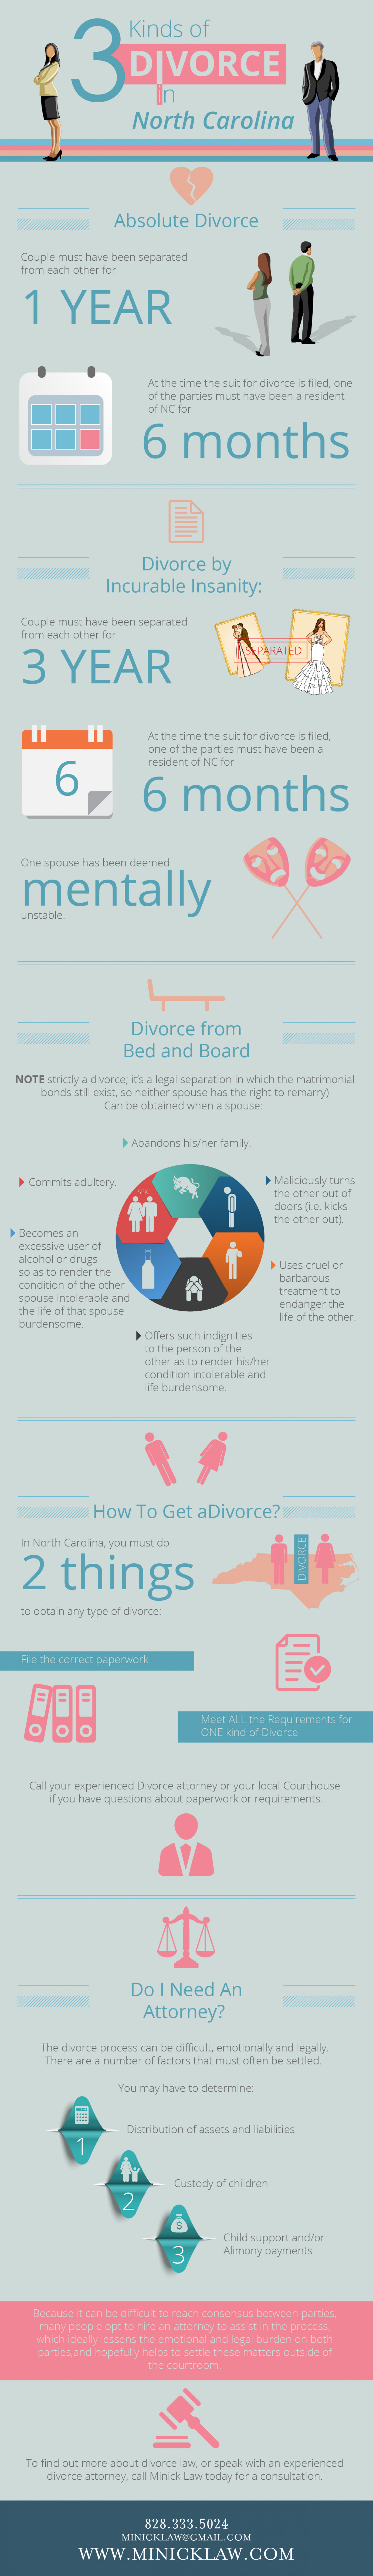 How To Get A Divorce (In NC) Infographic